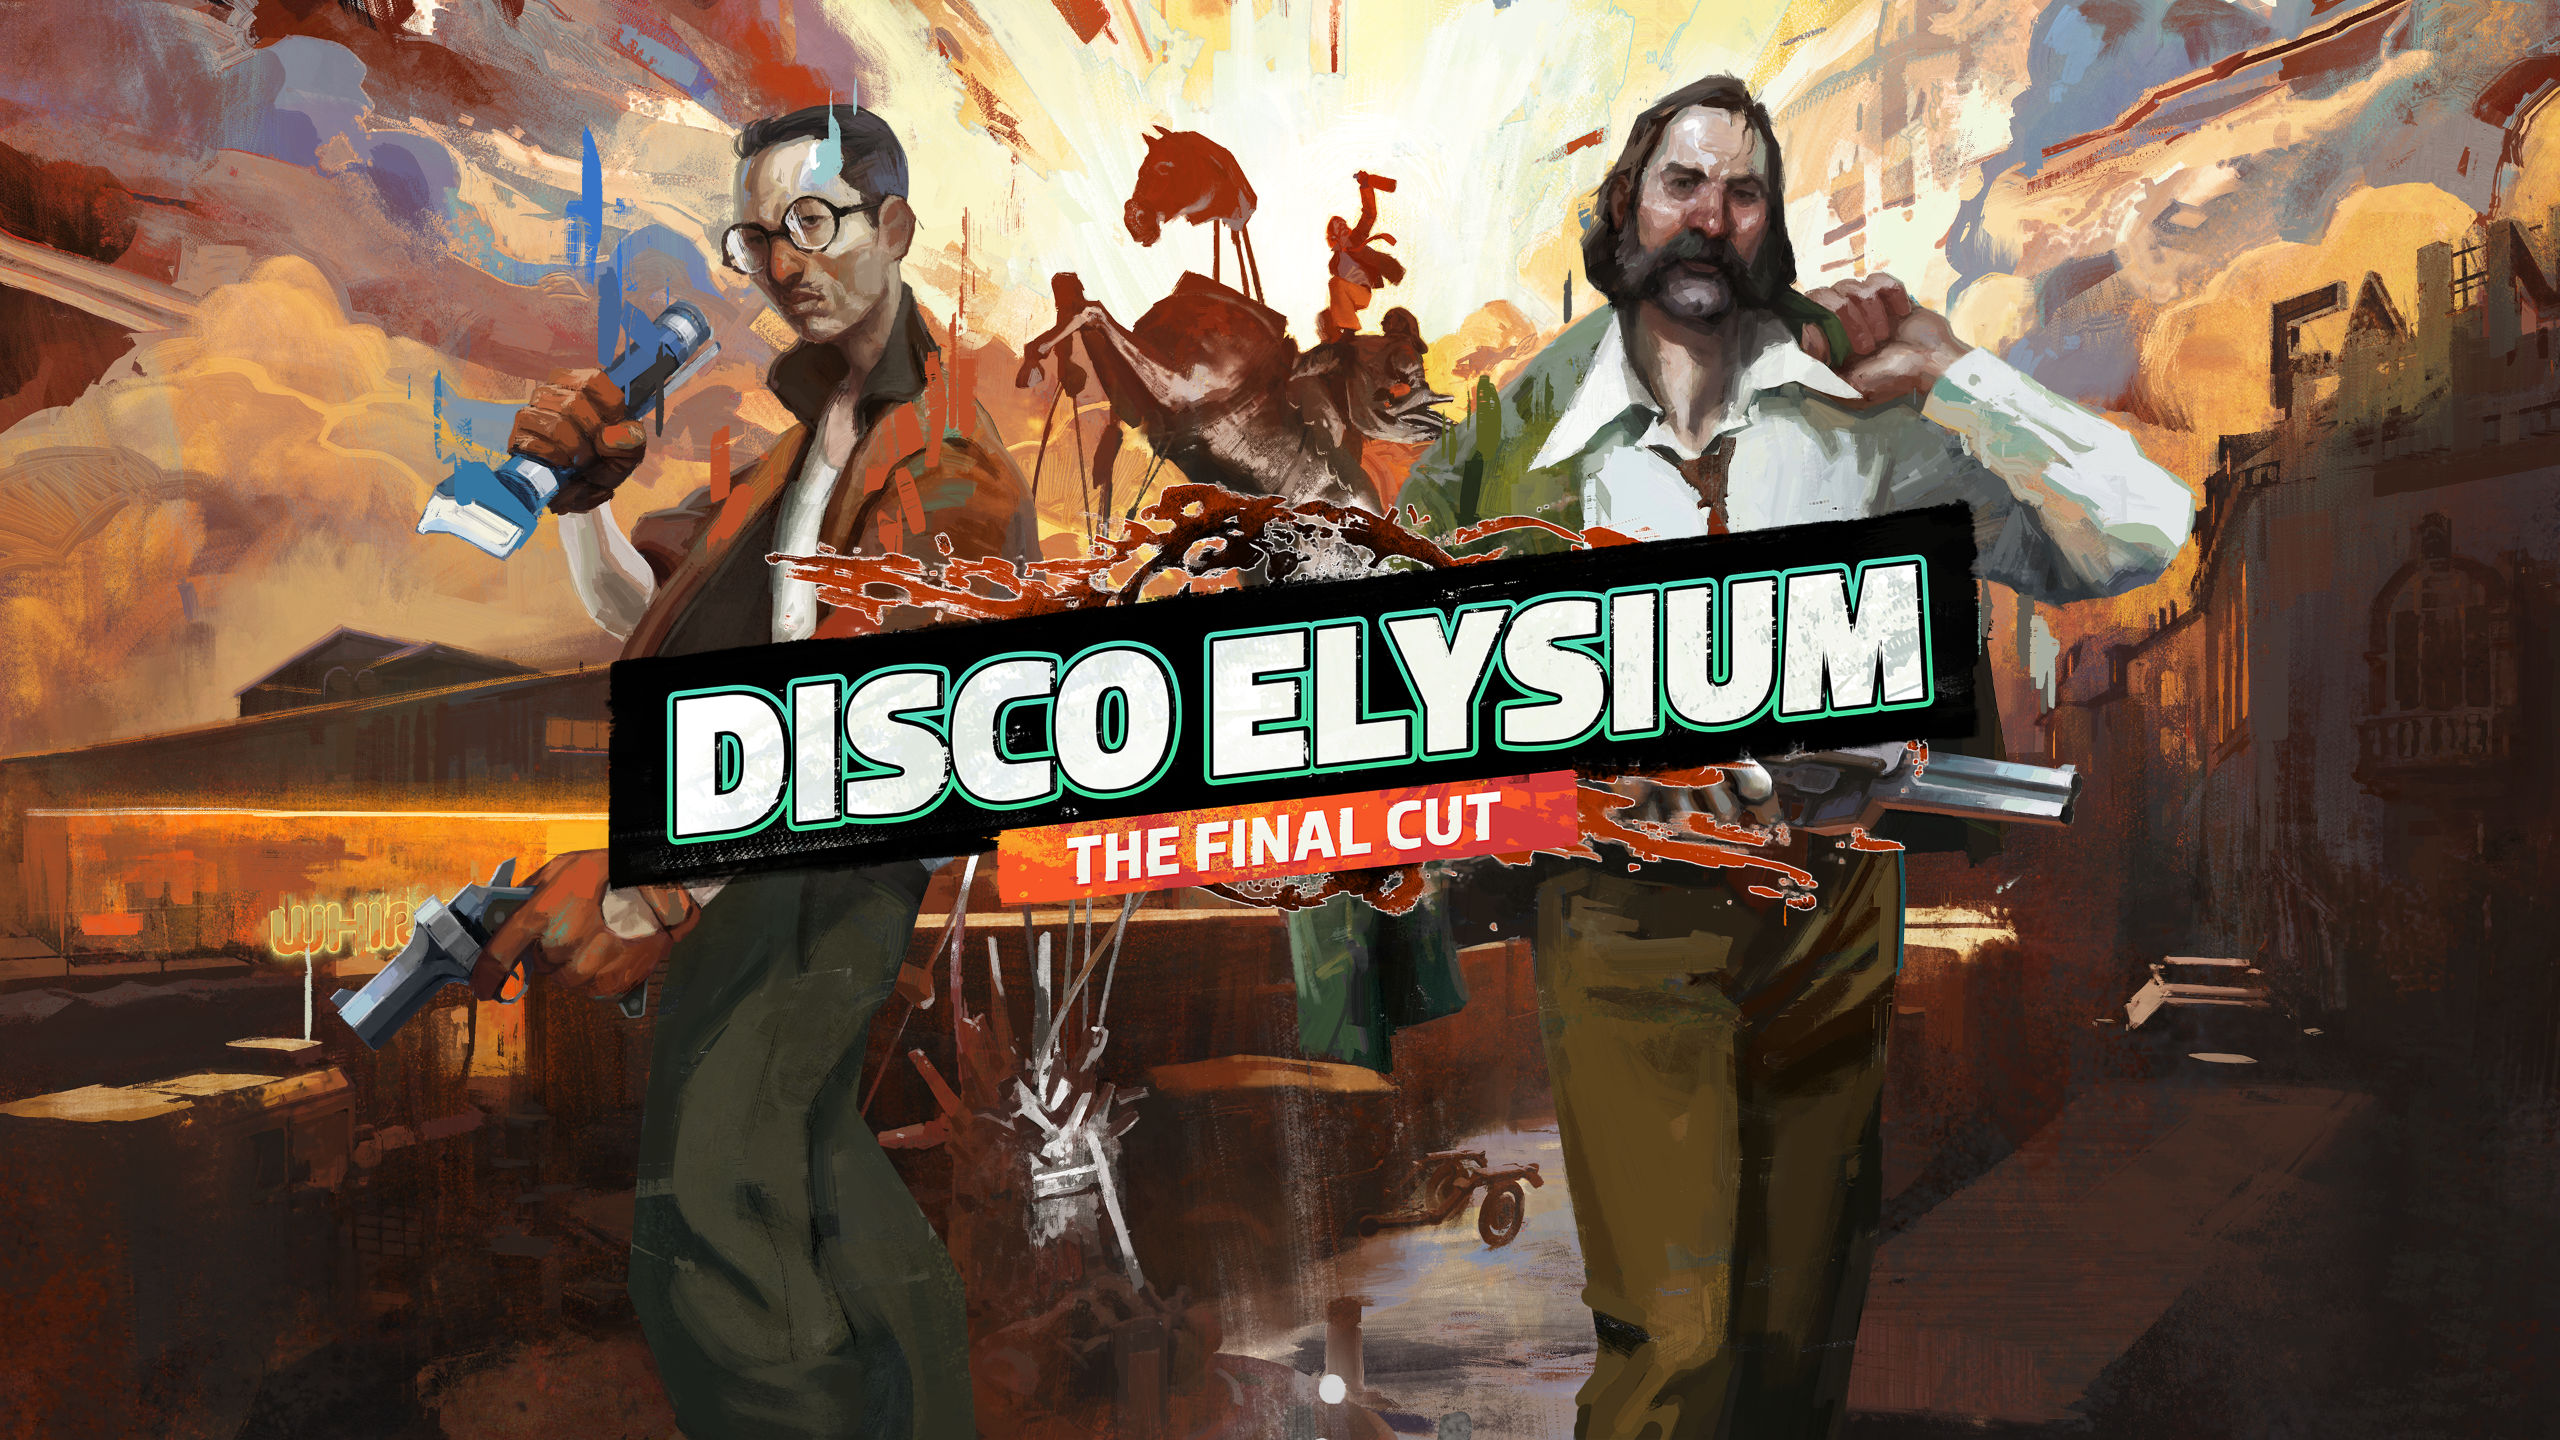 A screenshot of the Disco Elysium: The Final cut logo set before two men. One is wearing an orange jacket and black glasses and the other is wearing a white shirt and sporting a thick brown beard.